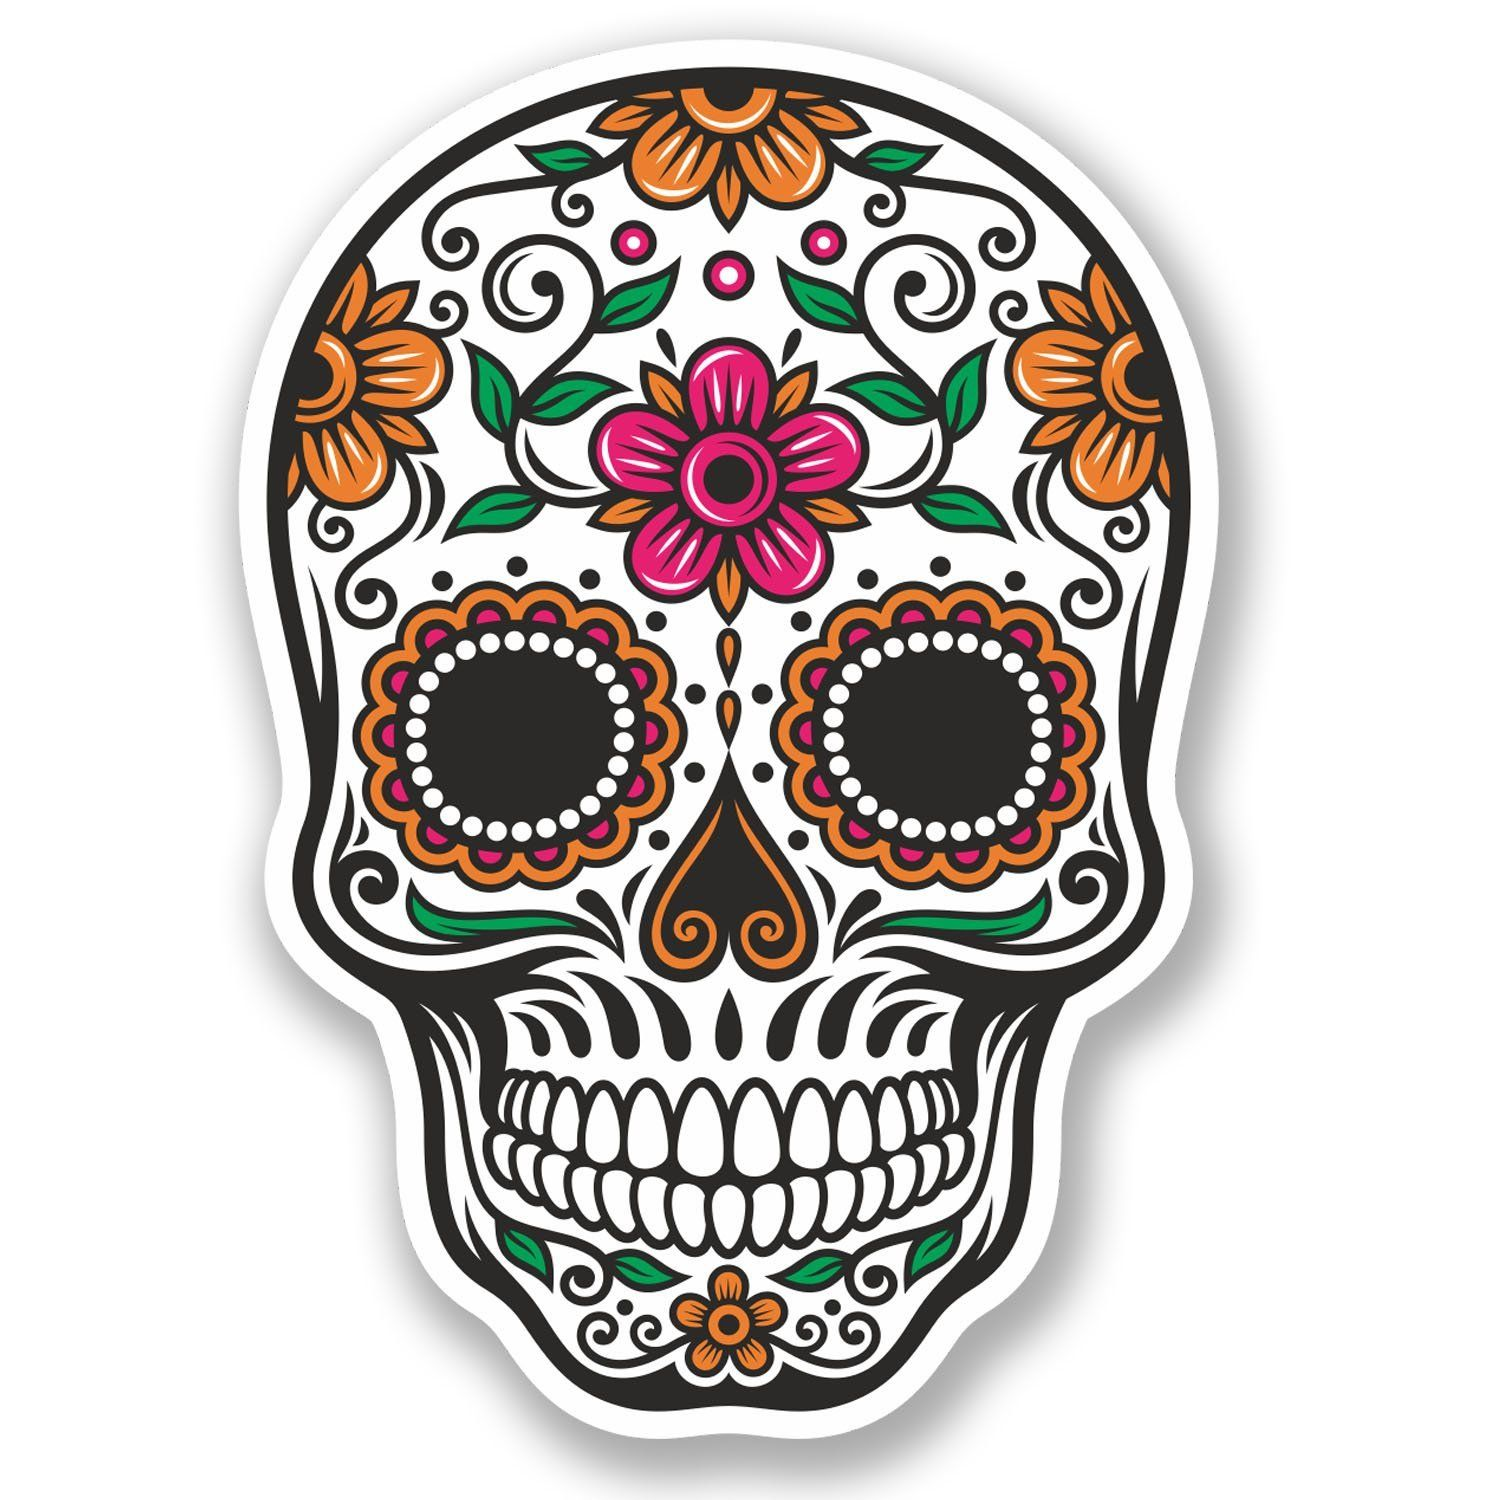 mexico skulls Googlehaku Skull sticker, Mexican sugar